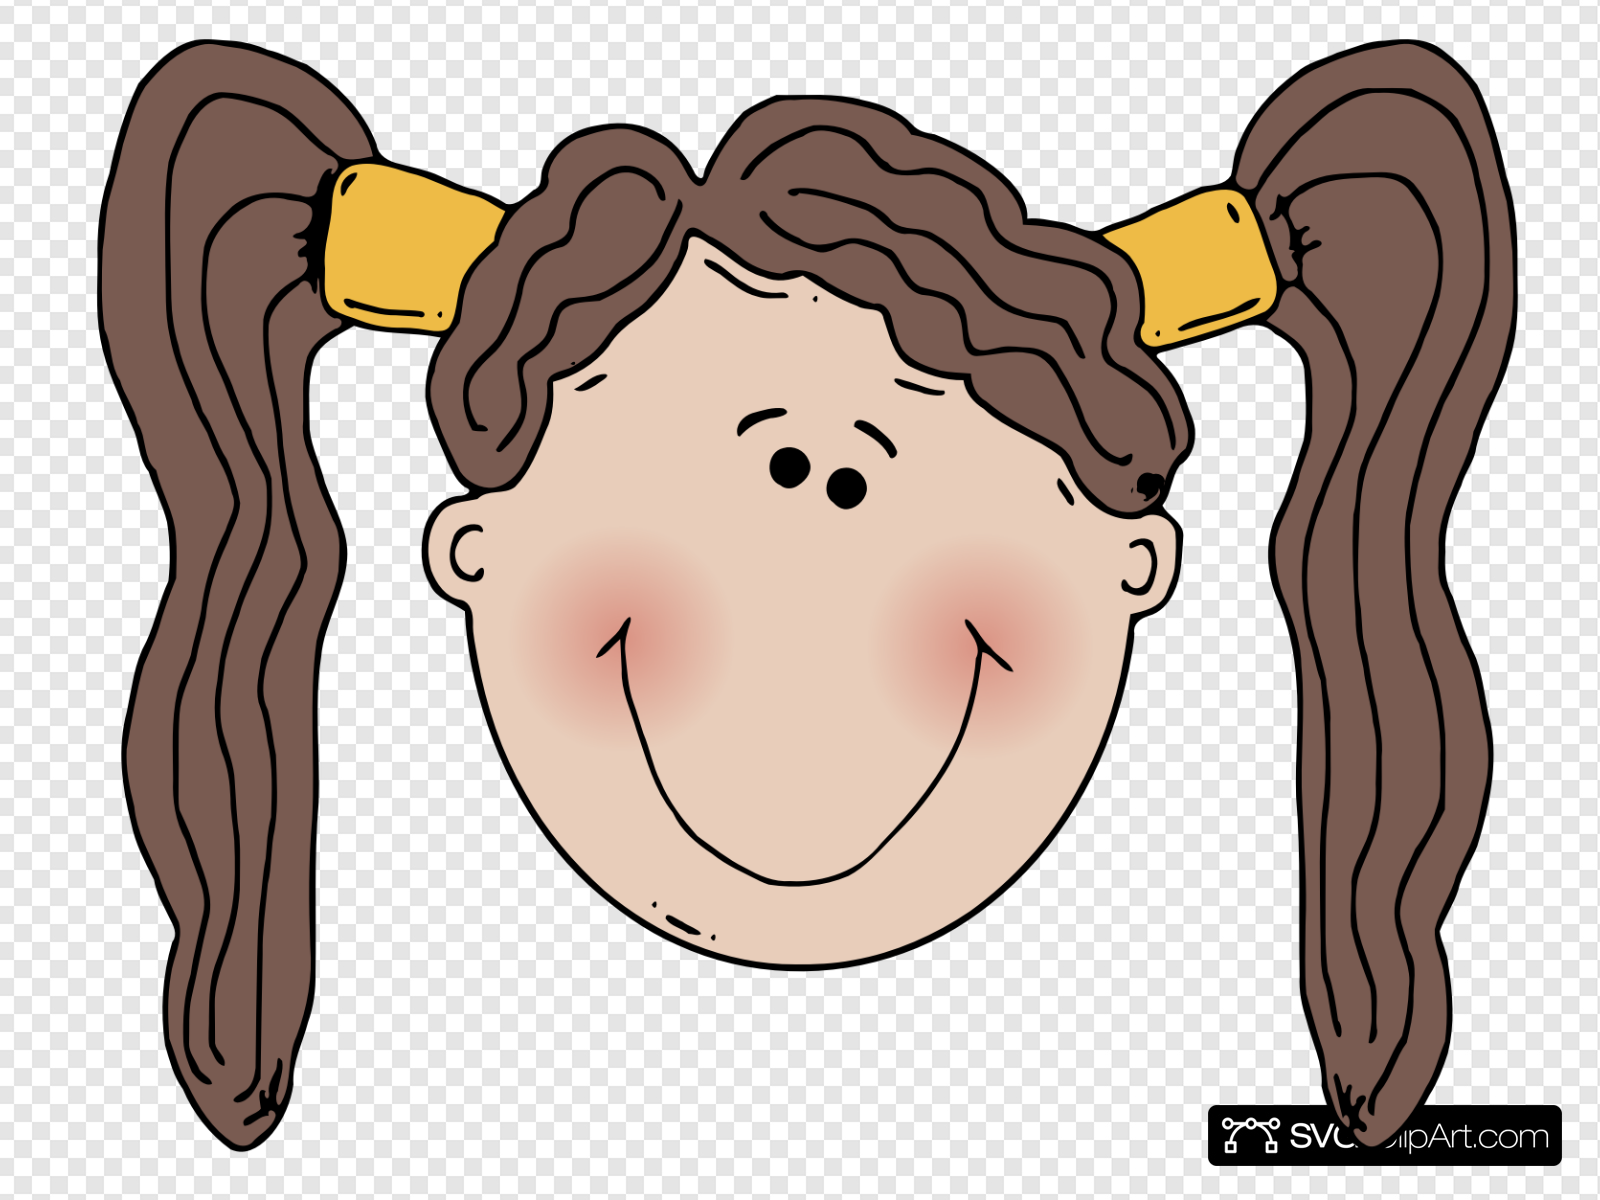 Blushing Girl In Pigtails Clip art, Icon and SVG.